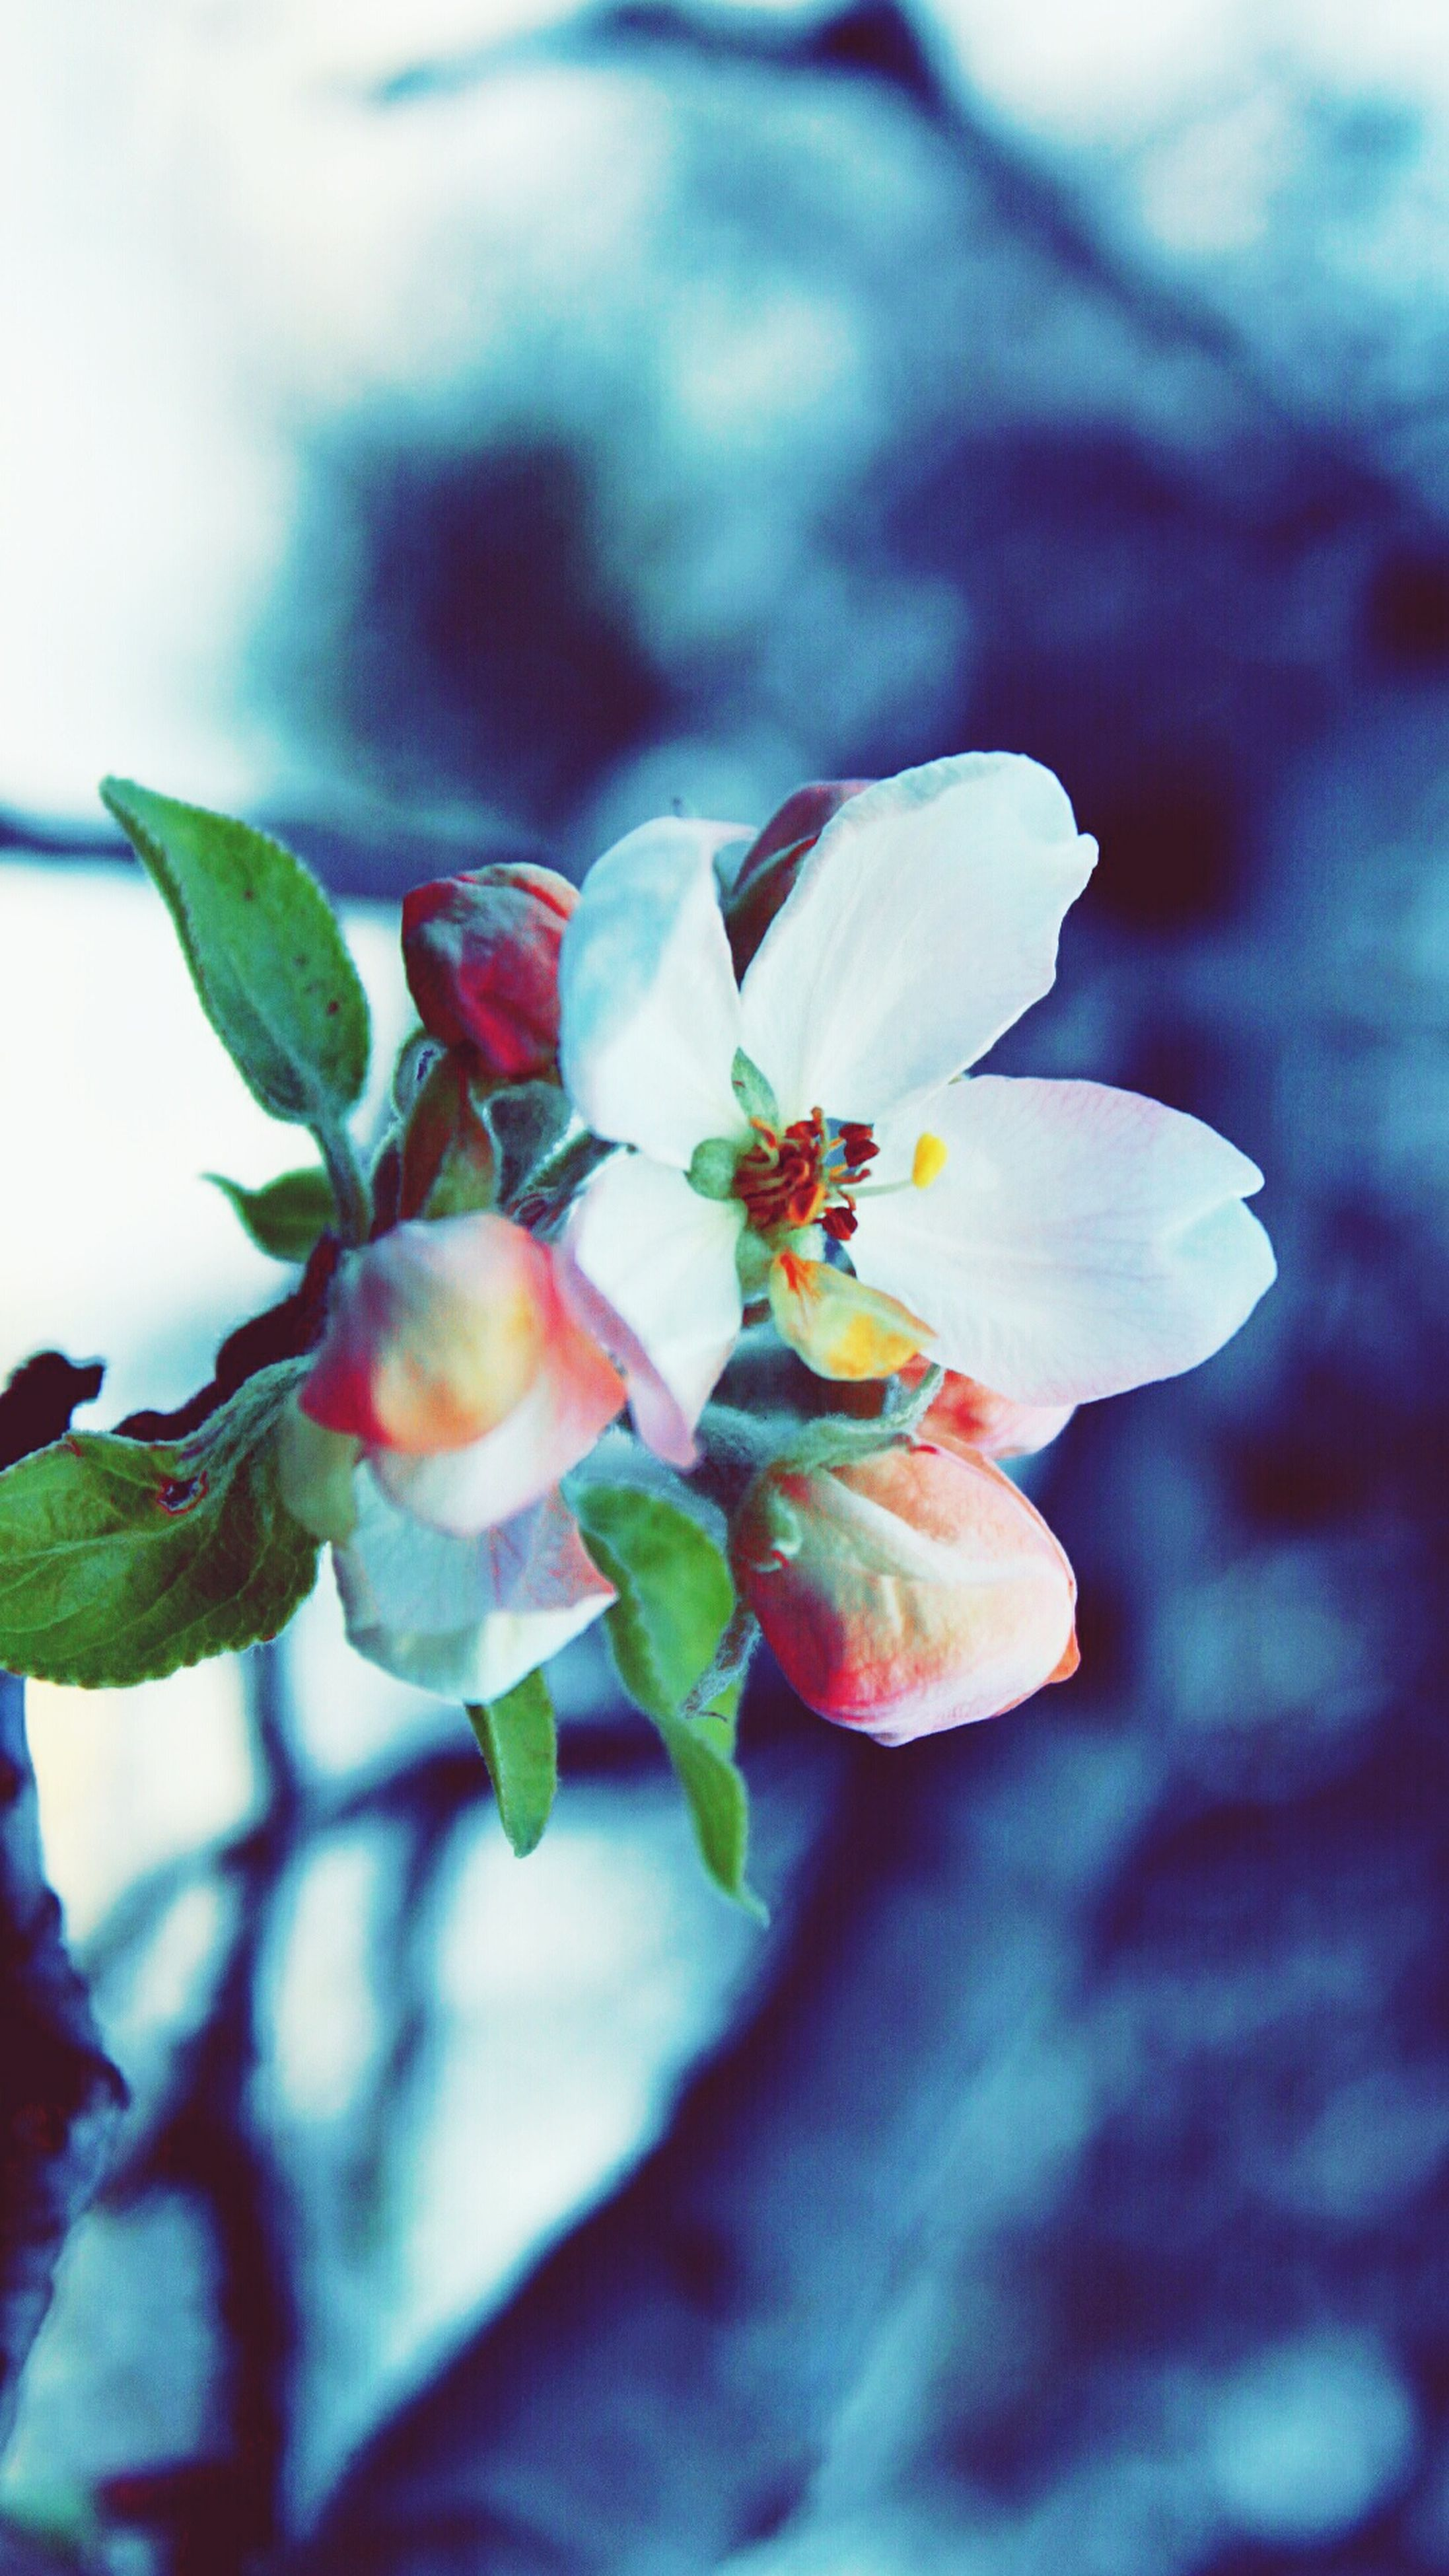 flower, petal, freshness, growth, fragility, close-up, flower head, beauty in nature, leaf, focus on foreground, nature, plant, blooming, single flower, in bloom, bud, blossom, stamen, stem, outdoors